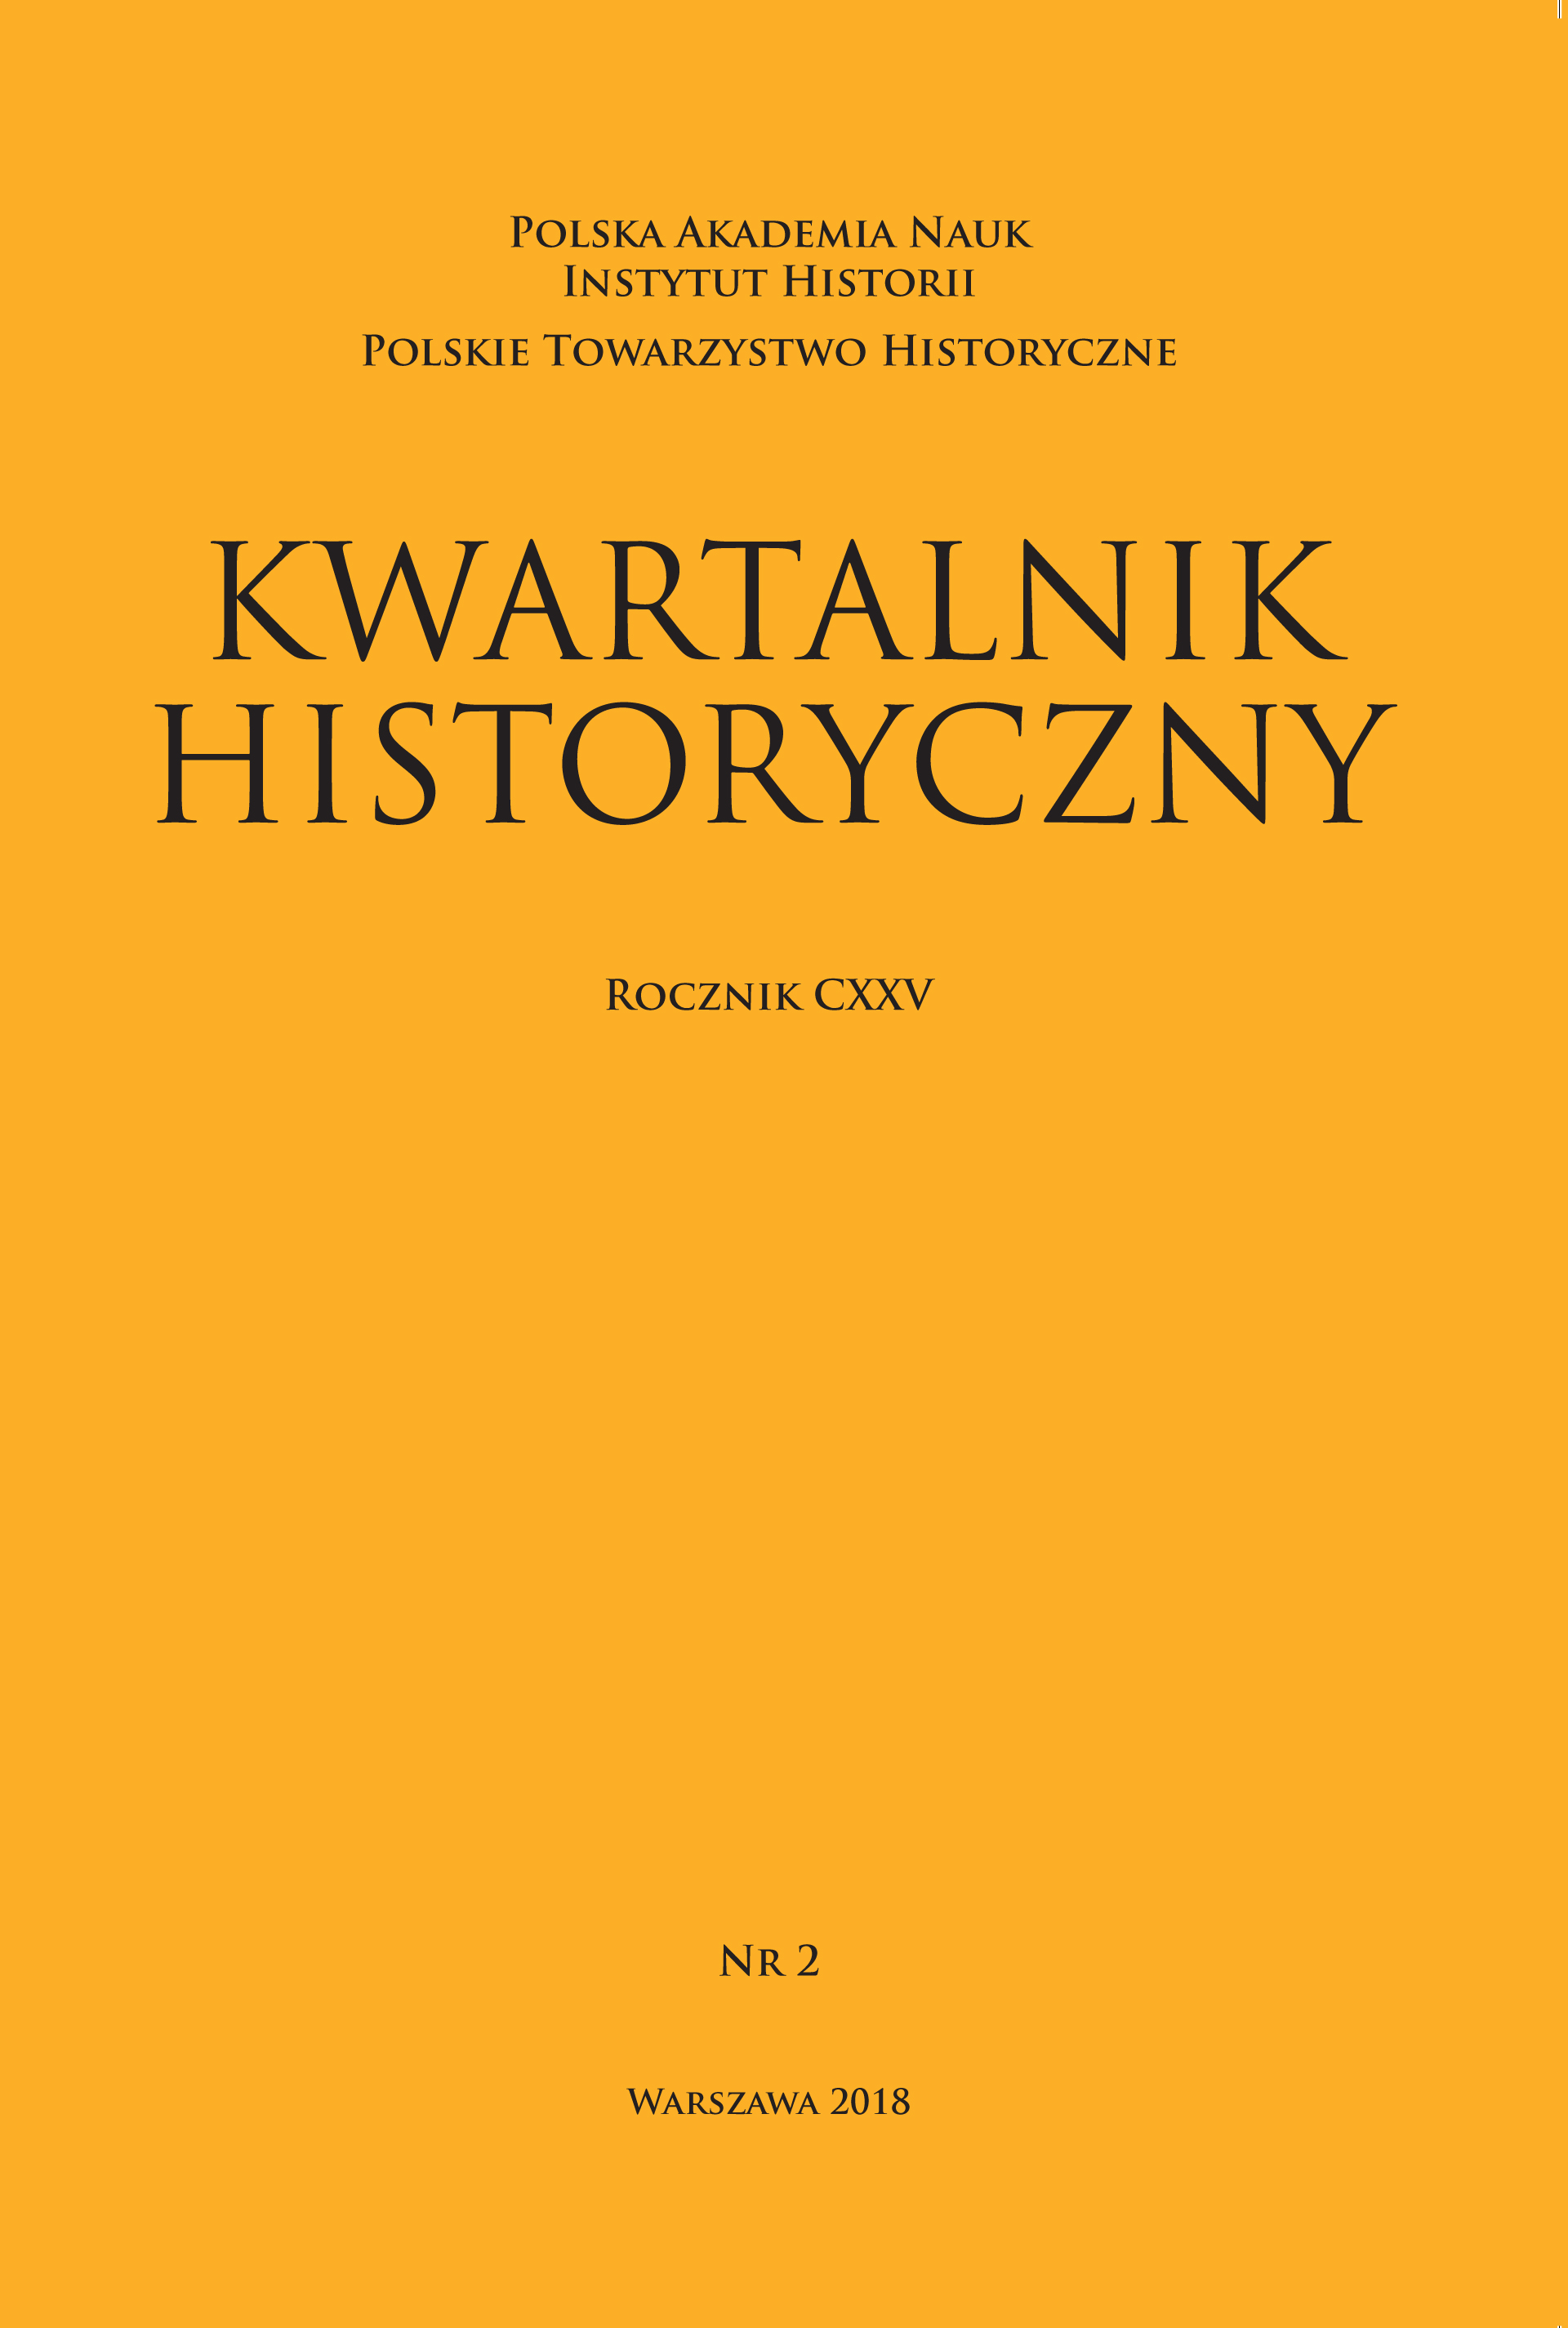 Reflections on the decline and rebirth of states (on the occasion of the 100th anniversary of Poland regaining its independence) Cover Image